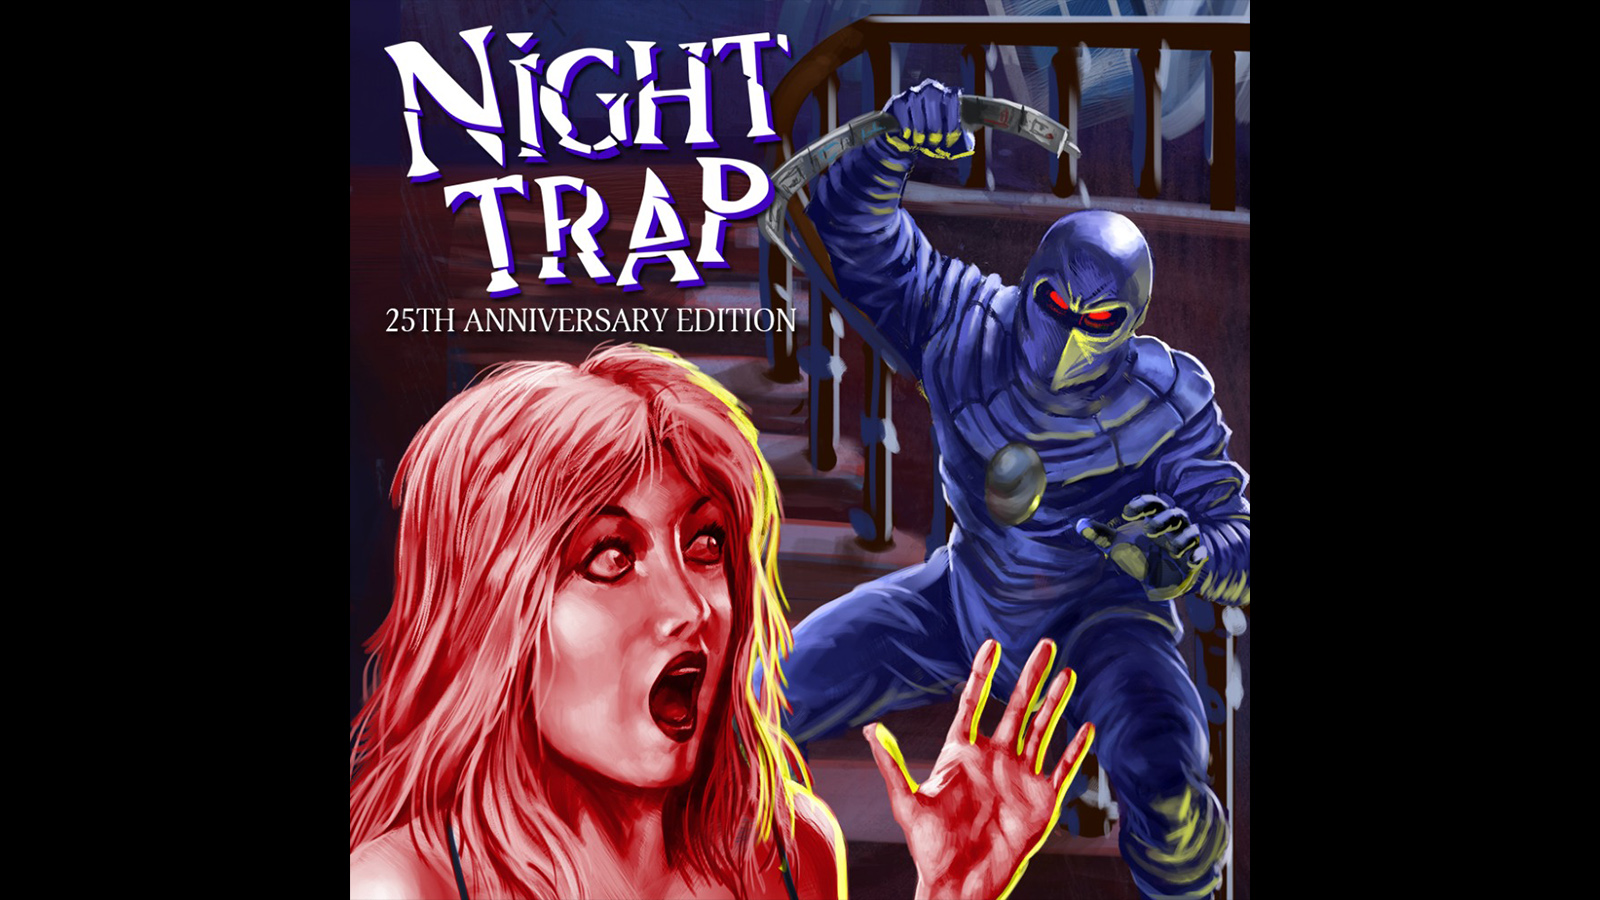 [7 Jogos Indispensáveis] - SEGA CD Night-trap-25th-anniversary-edition-listingthumb-01-ps4-us-15aug17?$Icon$